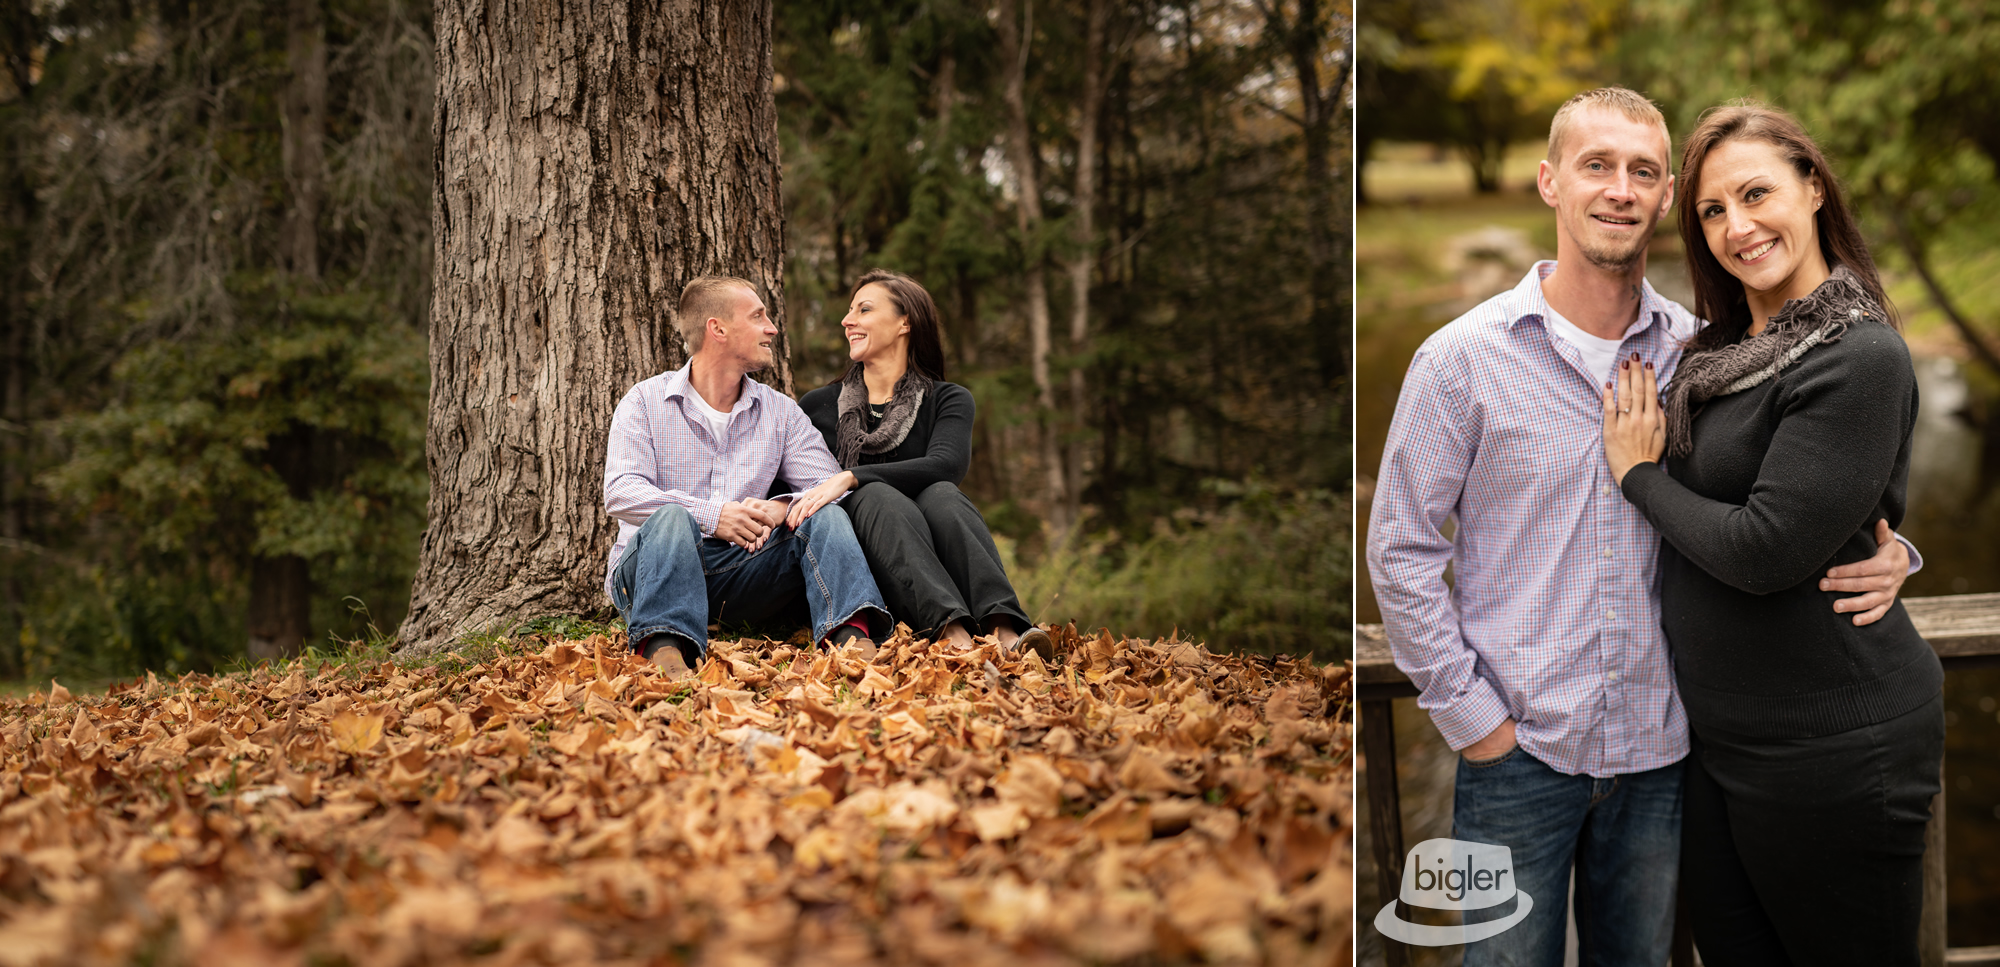 20181022_-_02_-_Shannon_and_Justin_Spa_State_Park_E-Shoot